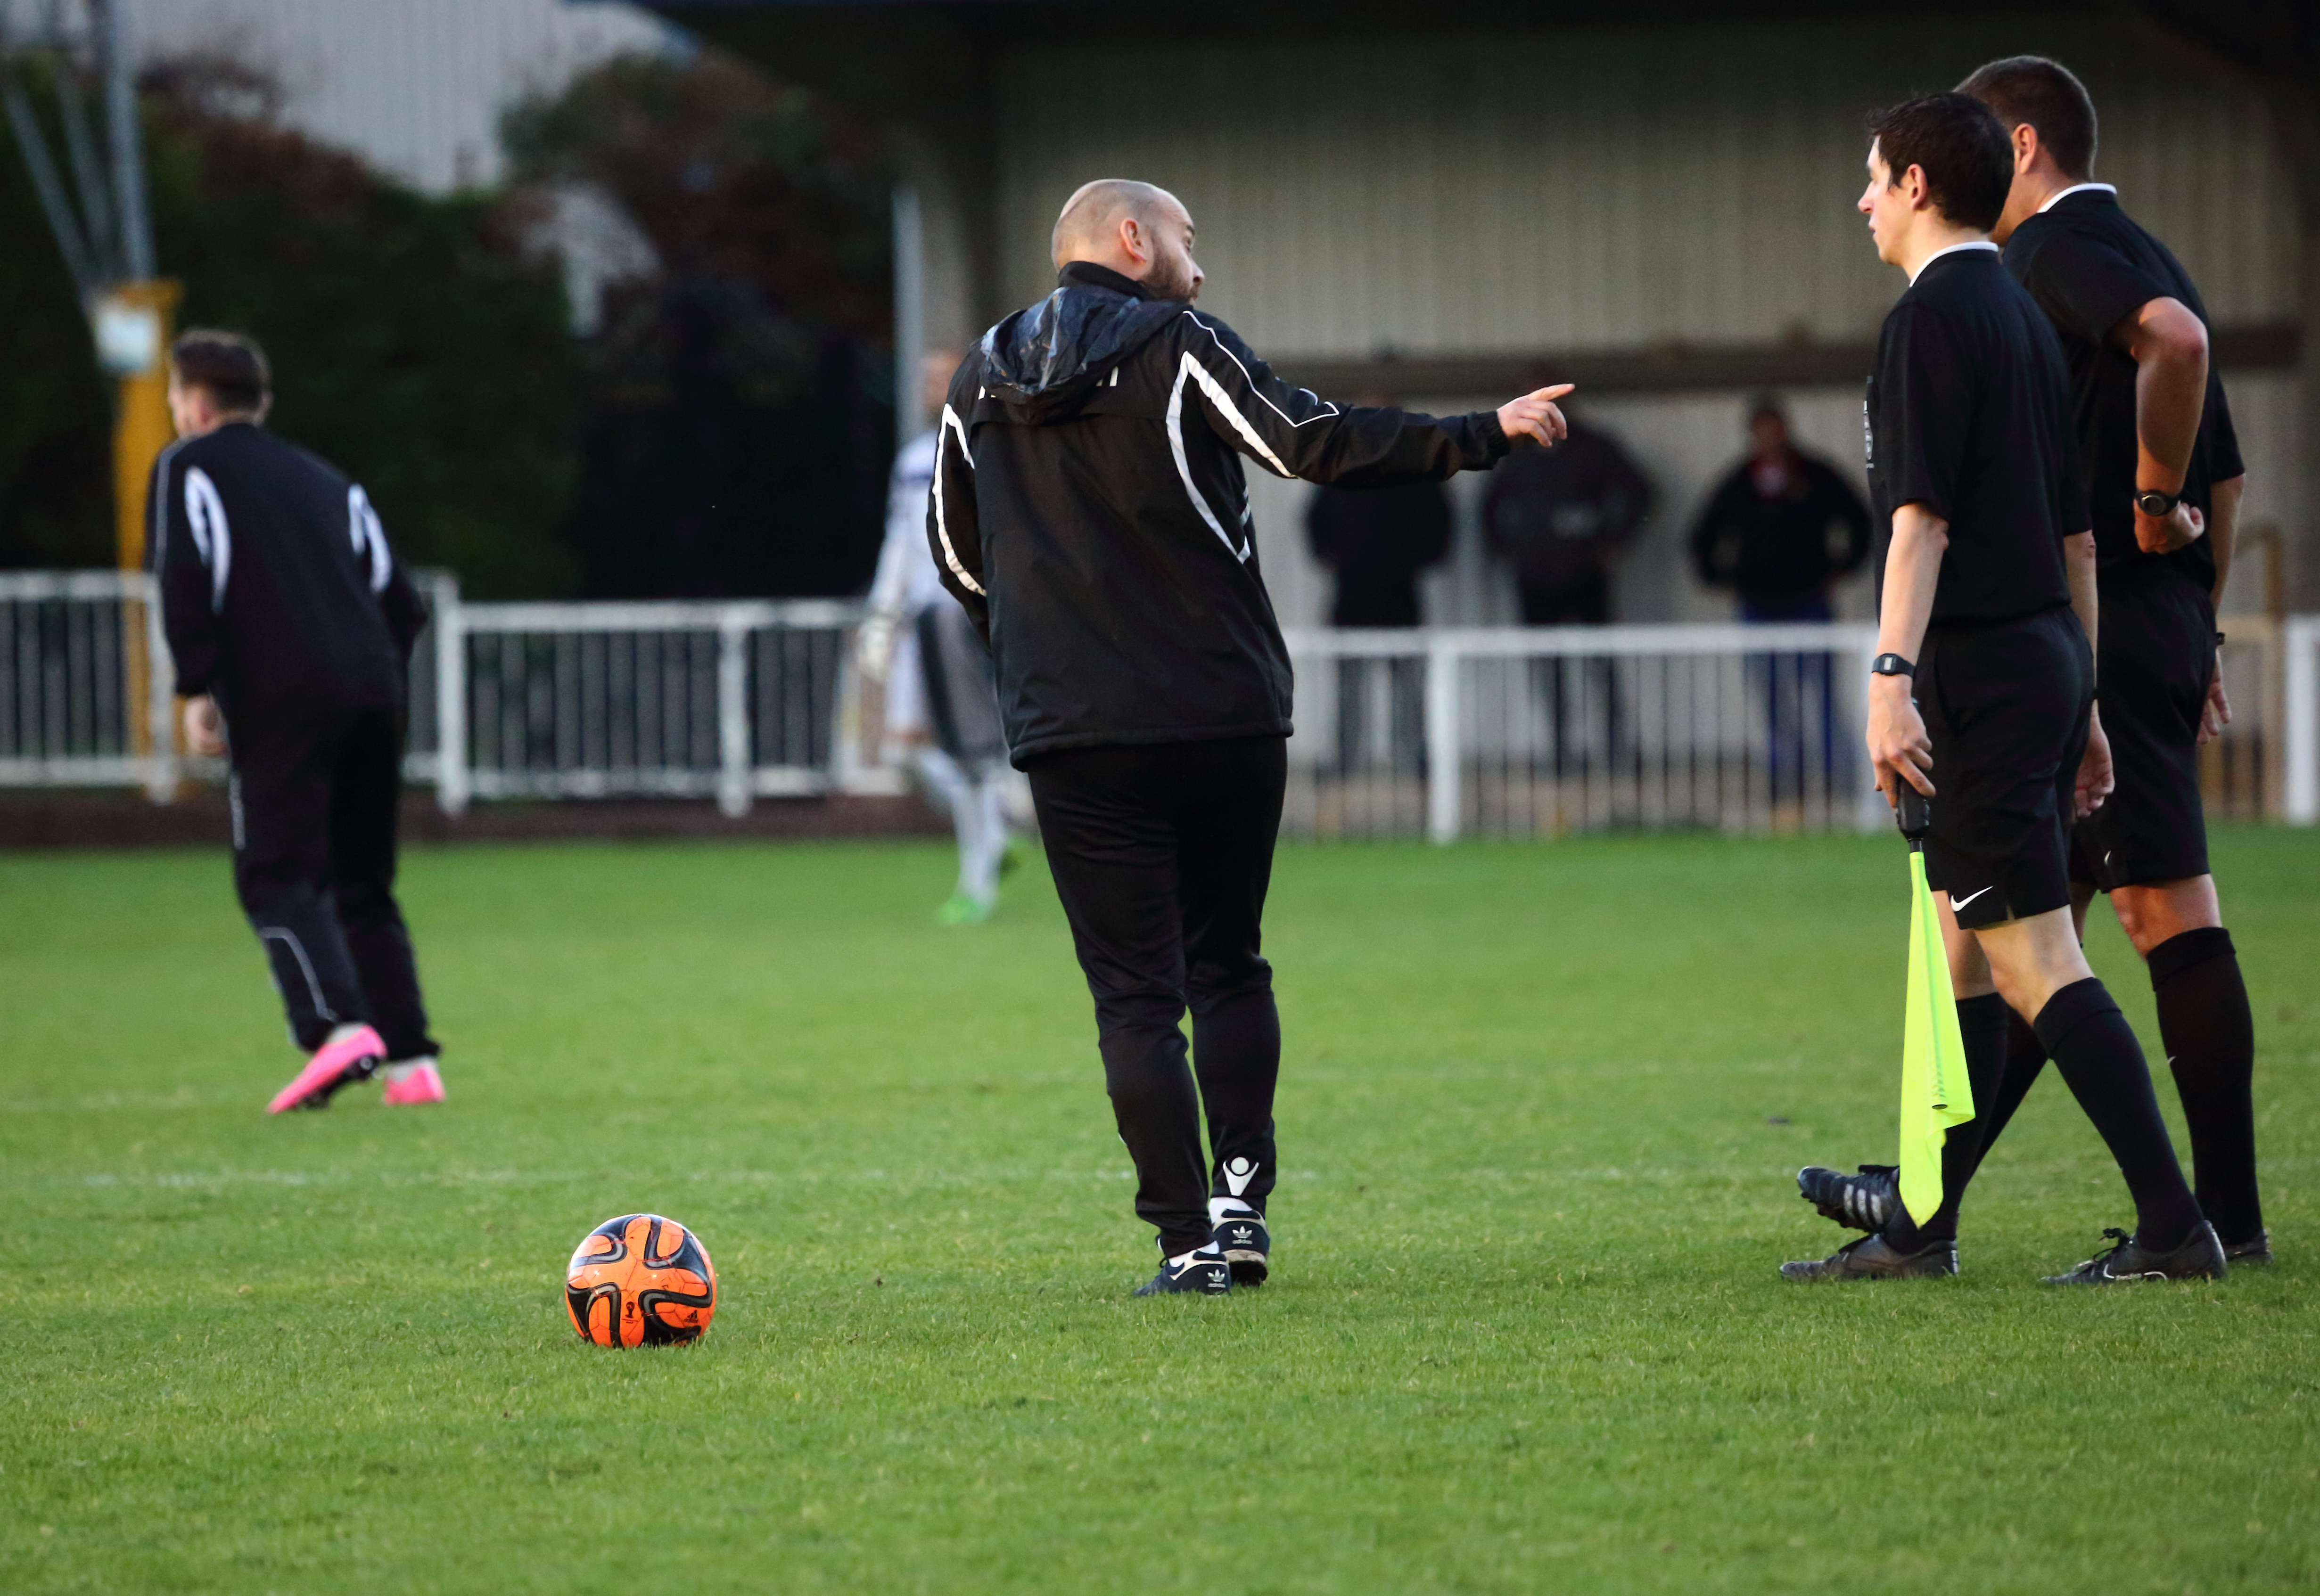 Angry Tommy Williams Kingstonian manager confronts the officials at half time. Why is this acceptable?